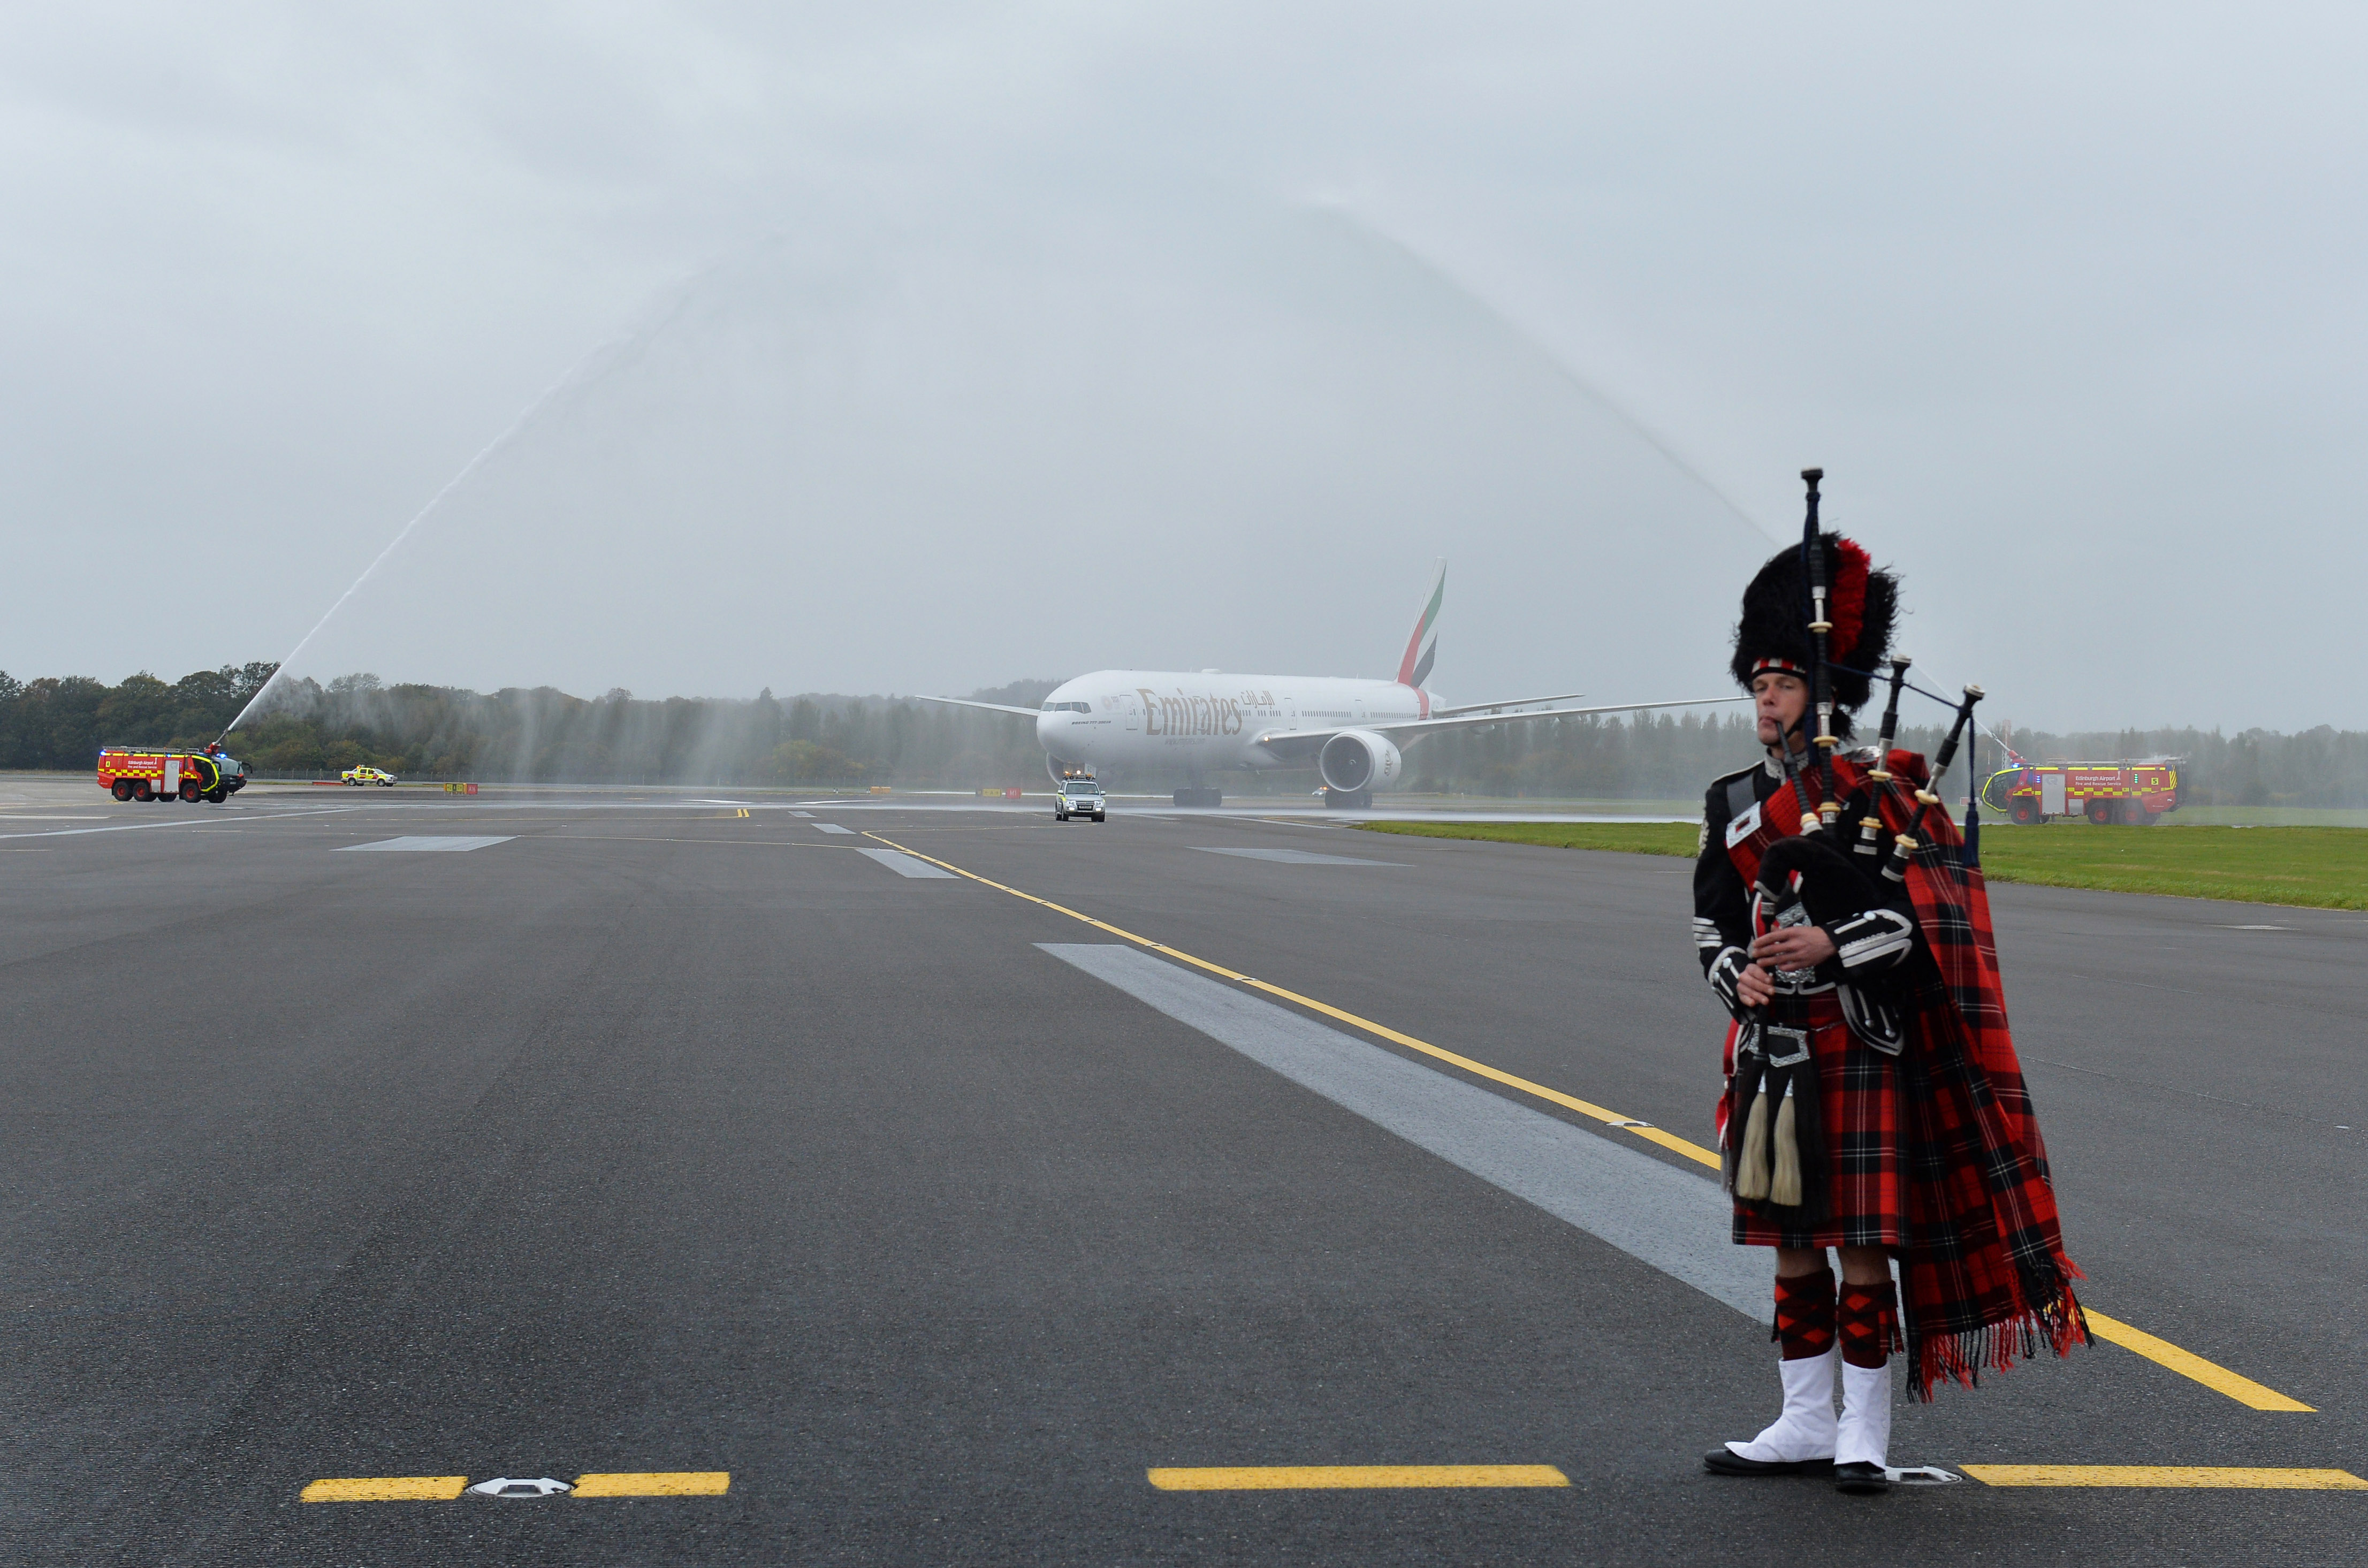 Emirates touches down in Edinburgh, Scotland, for first time